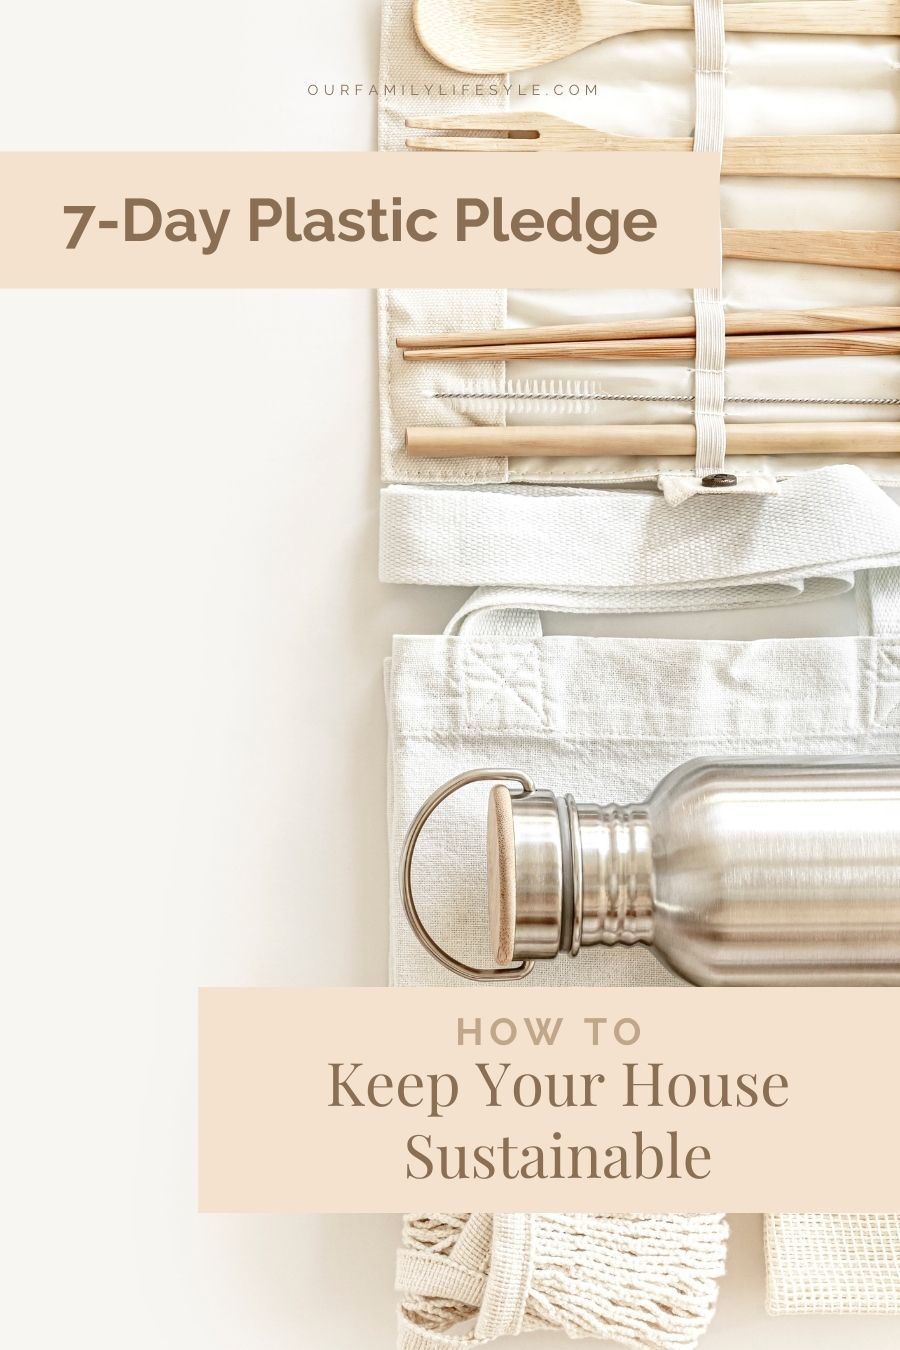 7-Day Plastic Pledge How to Keep Your House Sustainable